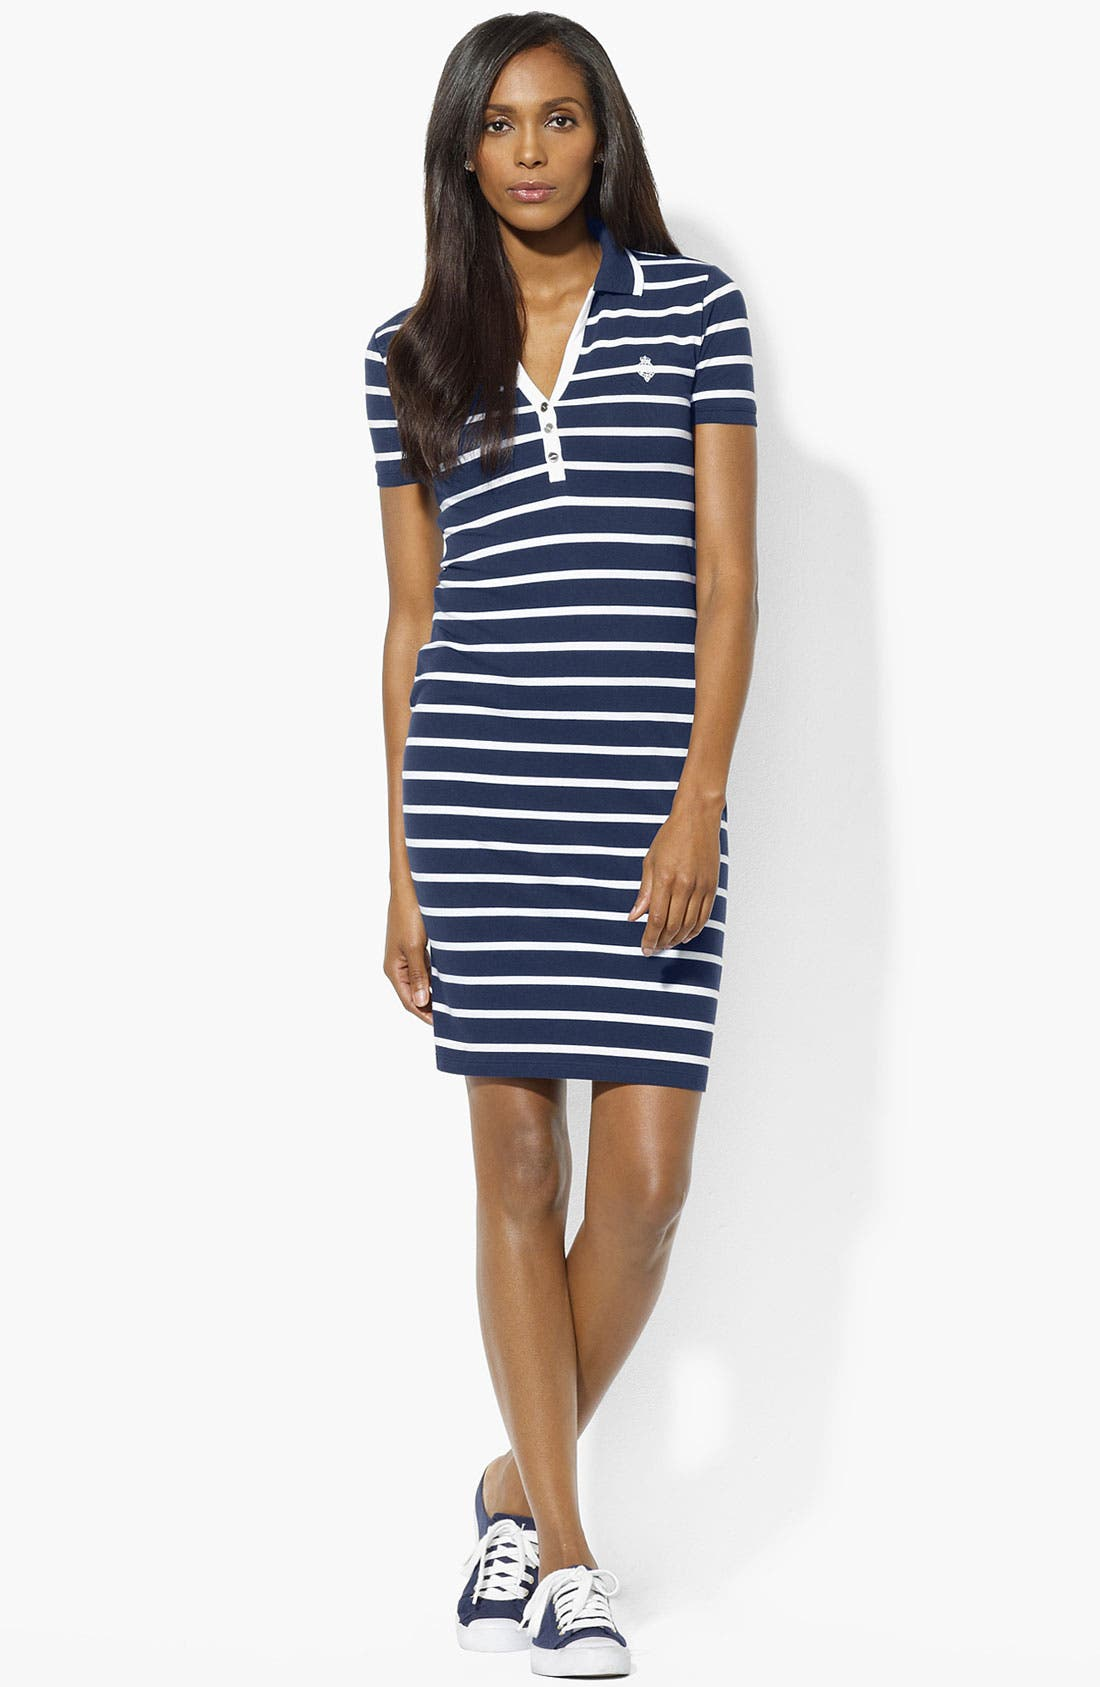 Alternate Image 1 Selected - Lauren Ralph Lauren Polo Dress (Petite) (Online Exclusive)